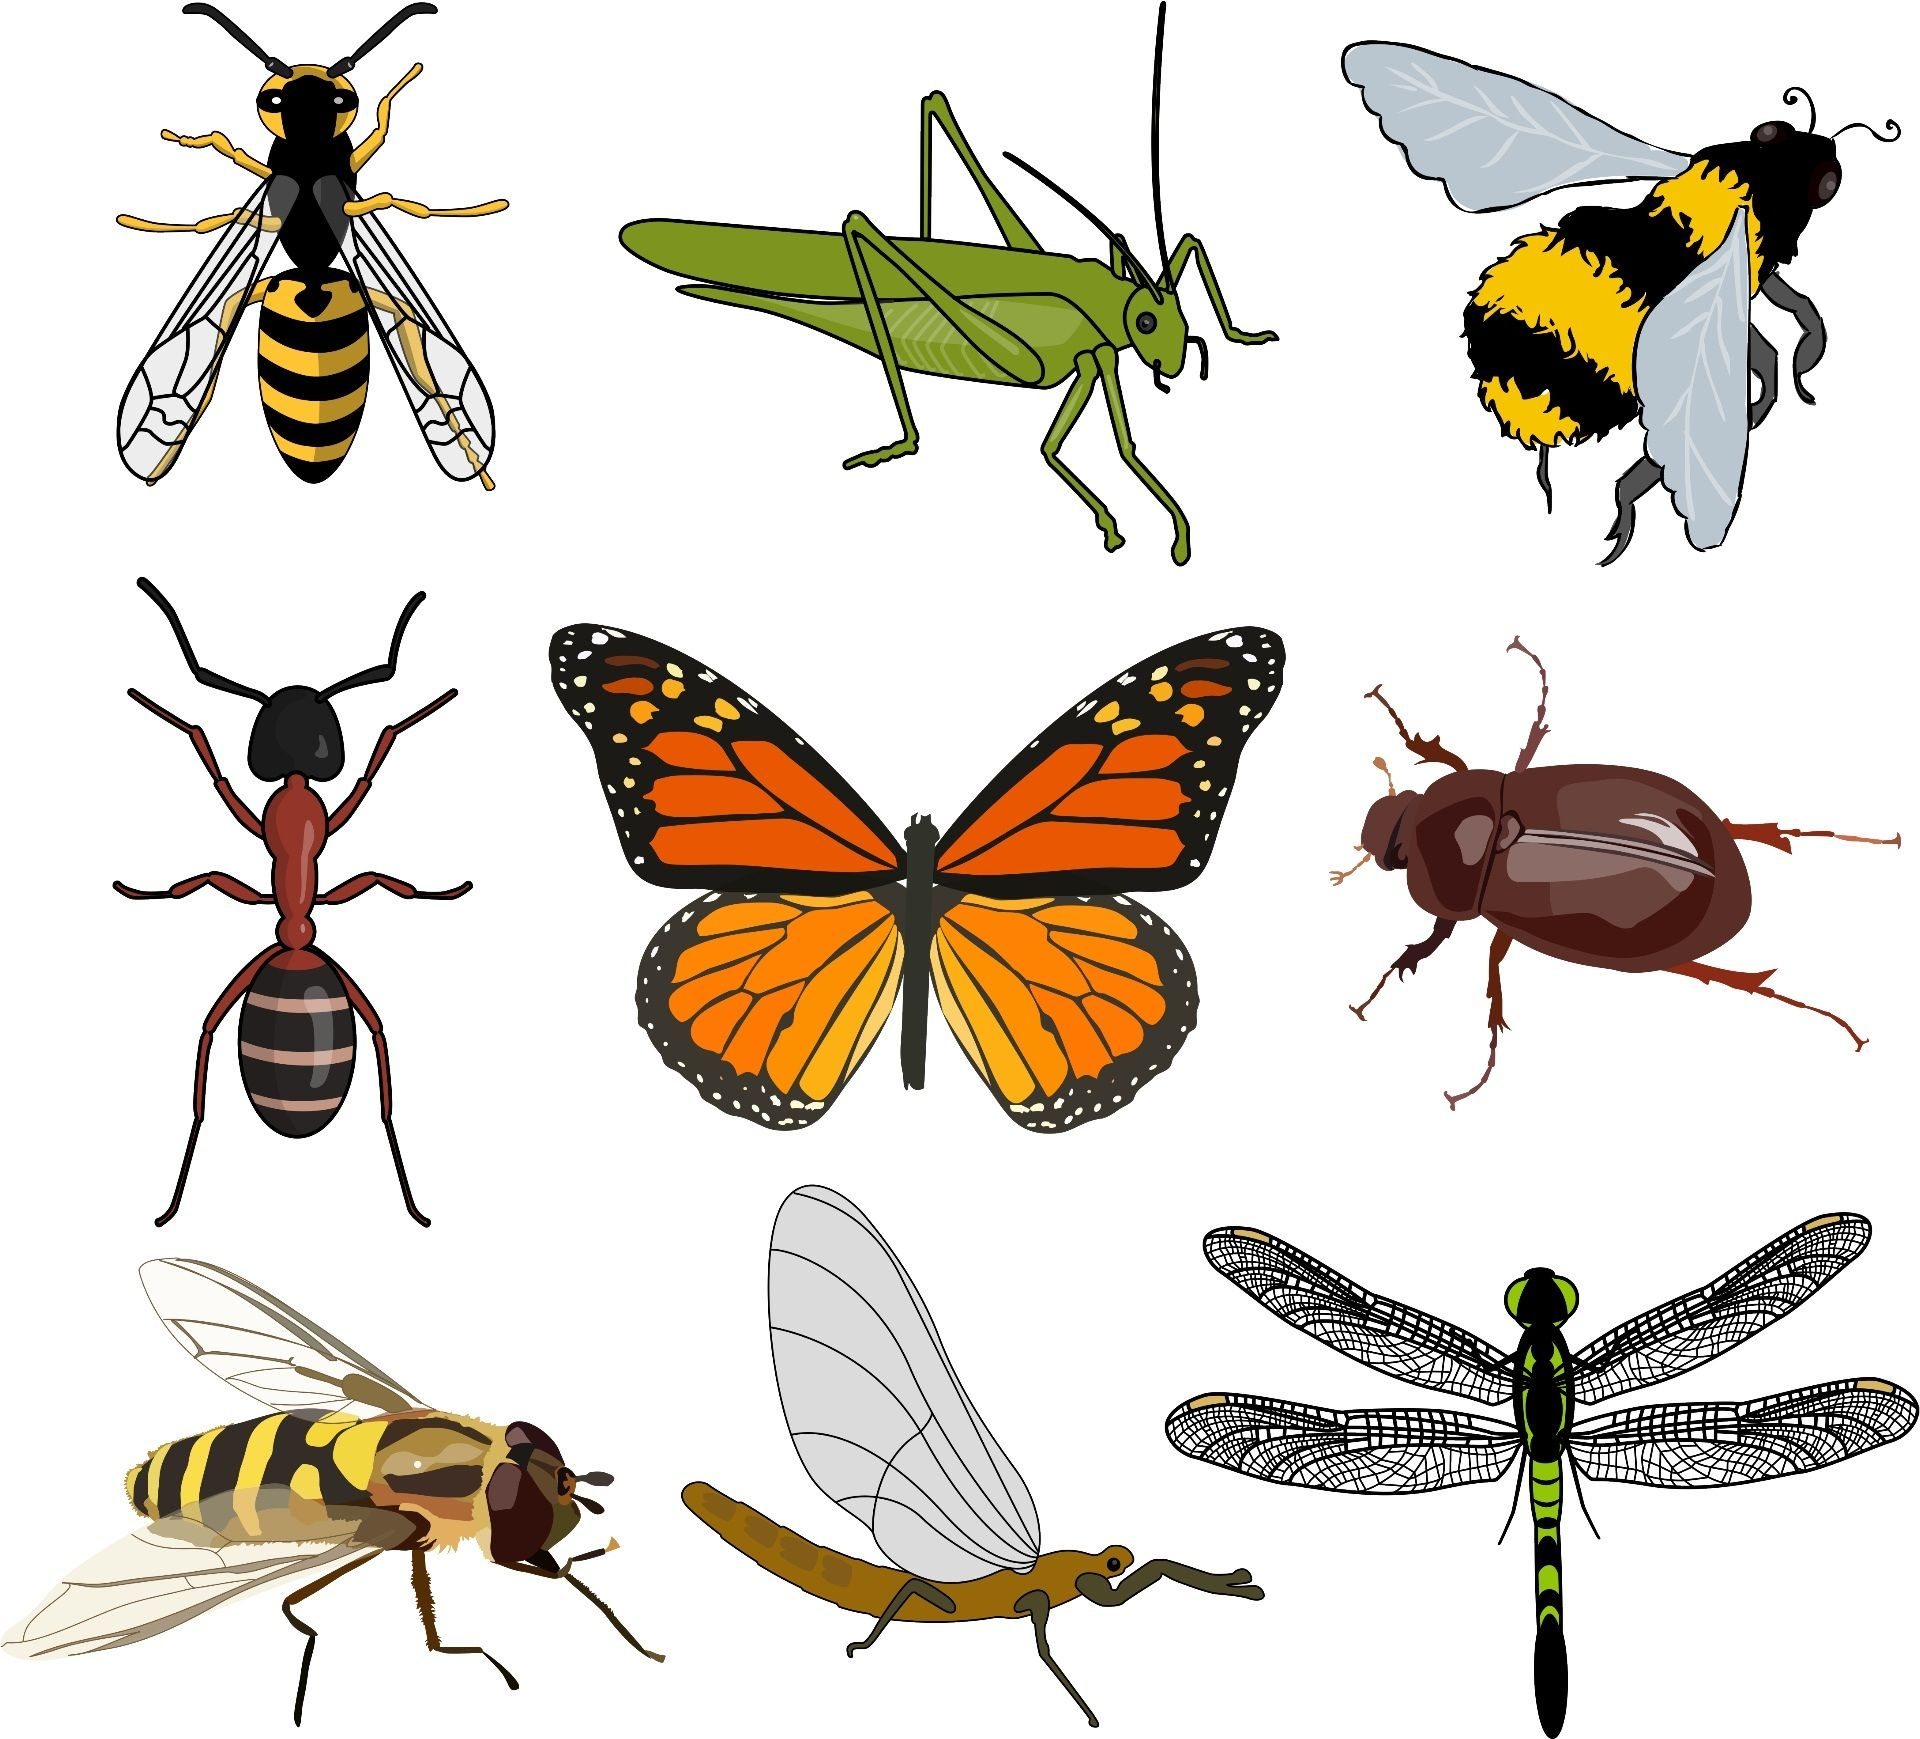 Images Of Invertebrates To Use For Display